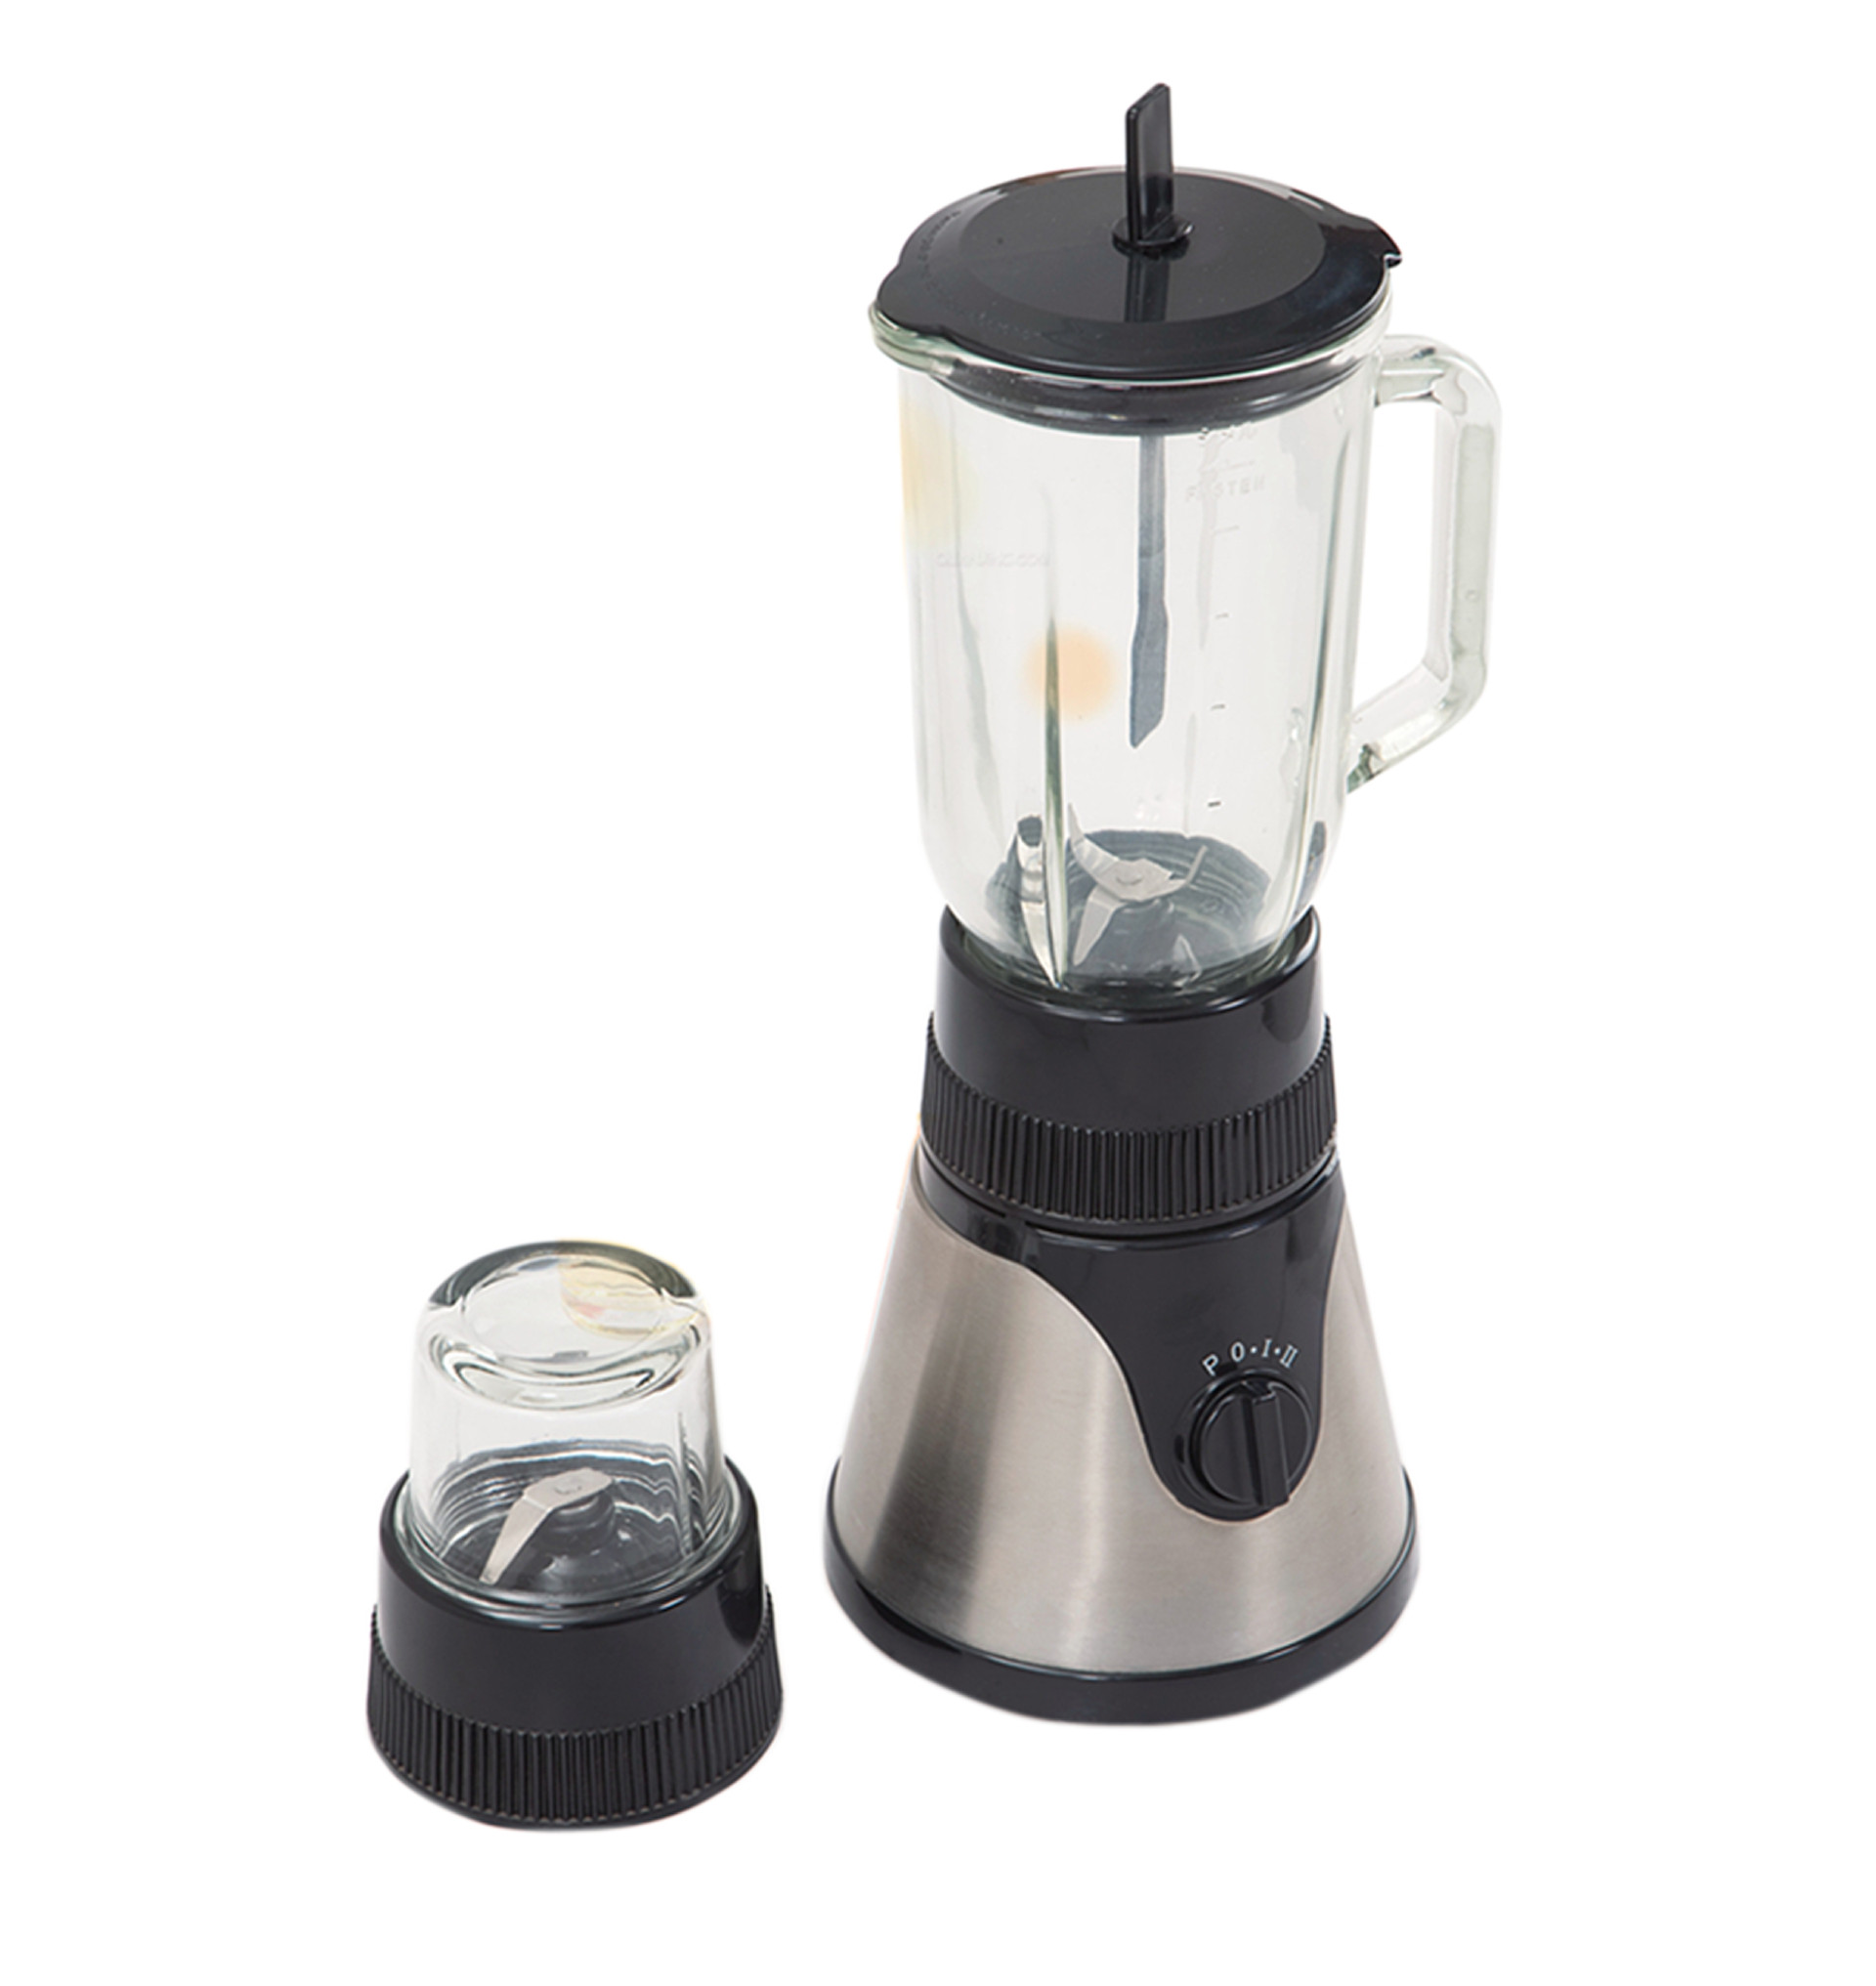 Geuwa Stainless Steel Body Kitchen Electric Ice Blender Kd-8